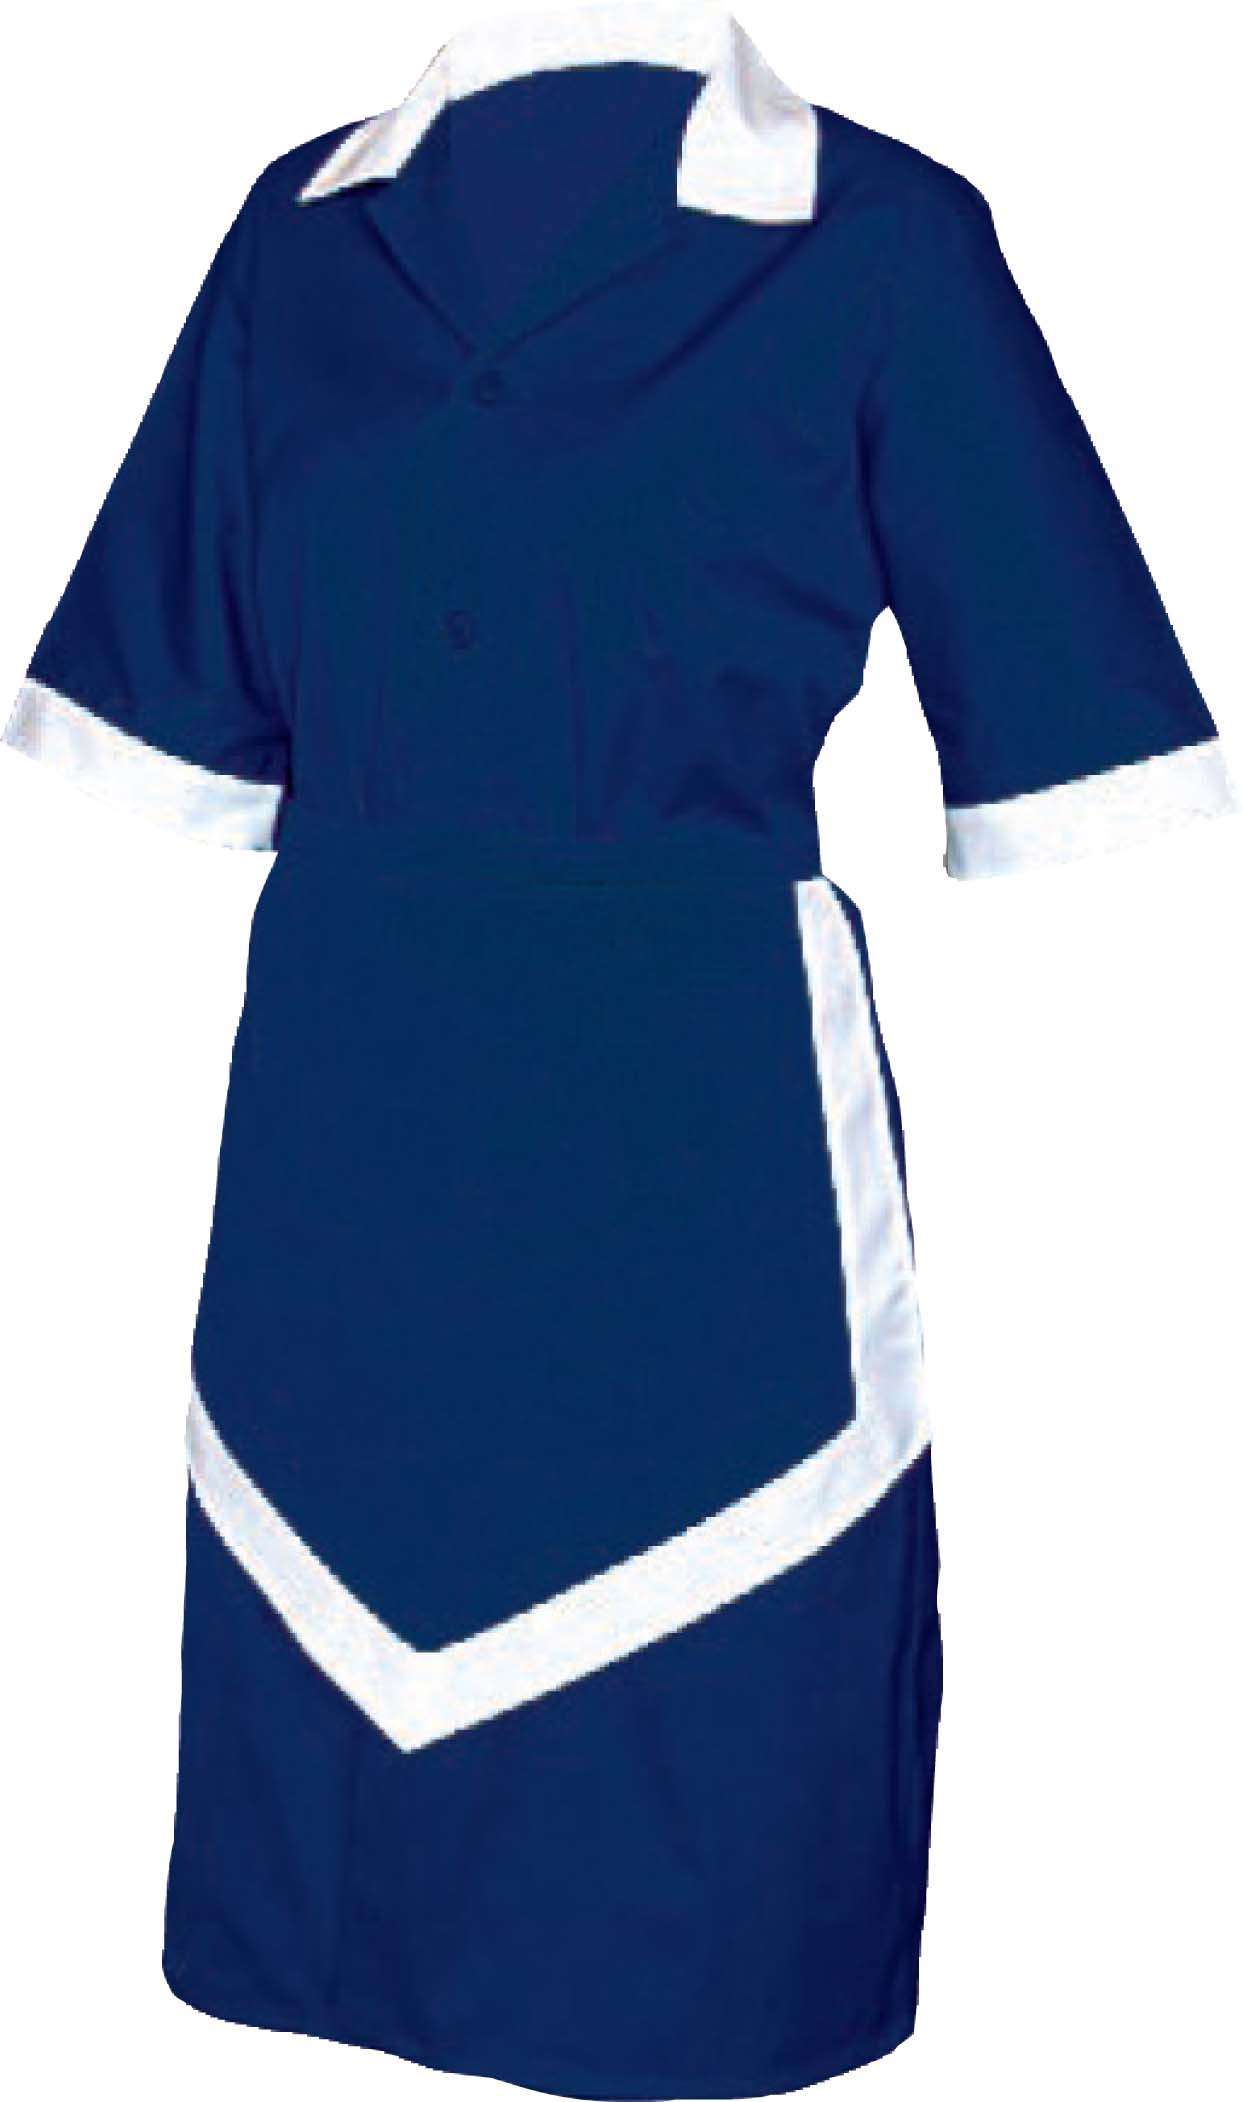 LADIES HOUSEKEEPING 3PC - NAVY AND WHITE - MEDIUM